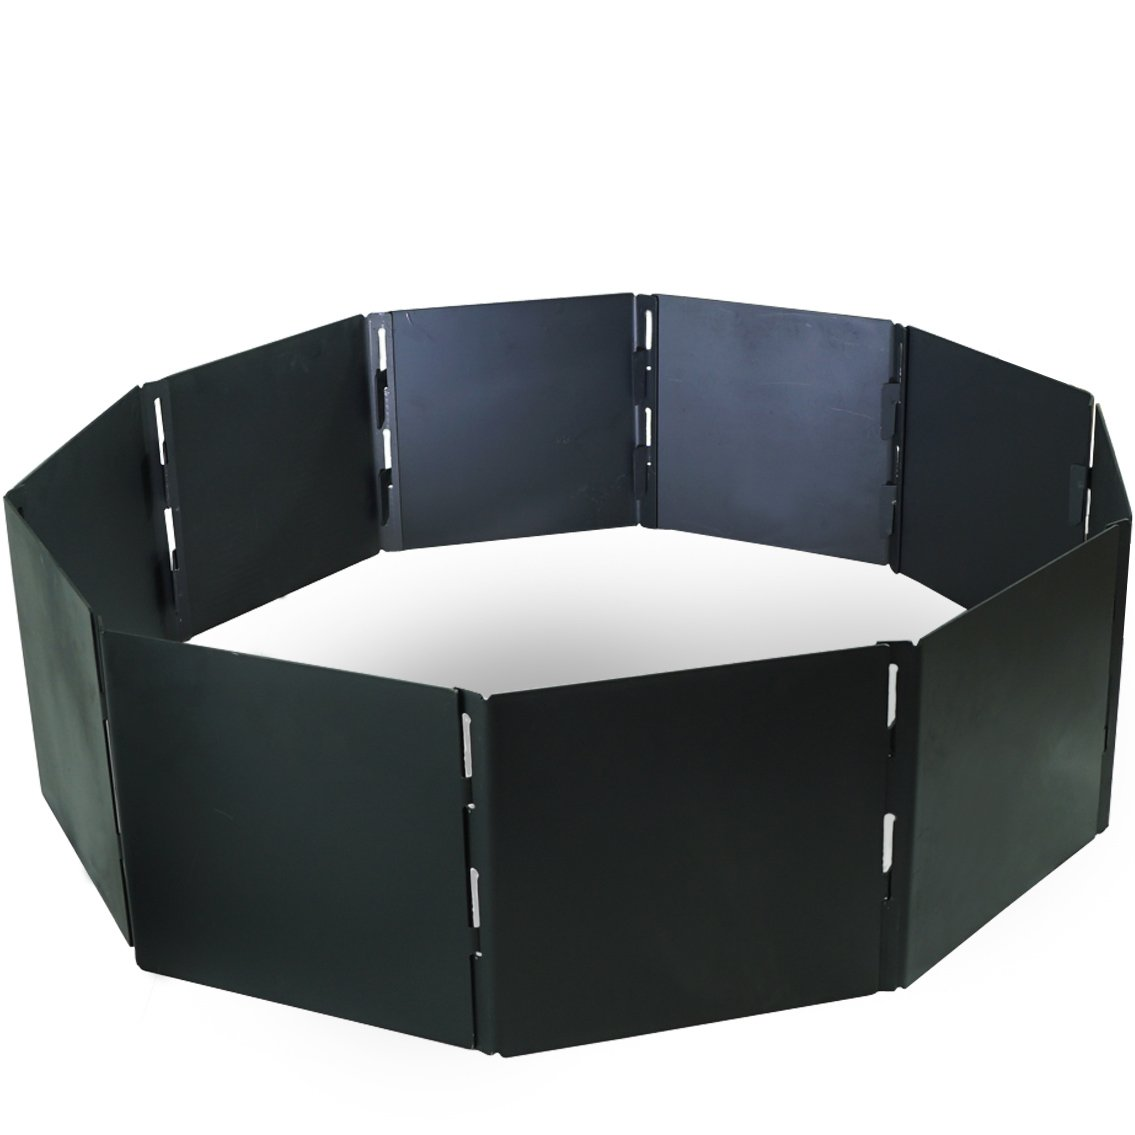 Campfire Portable Fire Pit Ring 48'' Diameter 12 Panels Stackable Heavy Steel by Titan Attachments